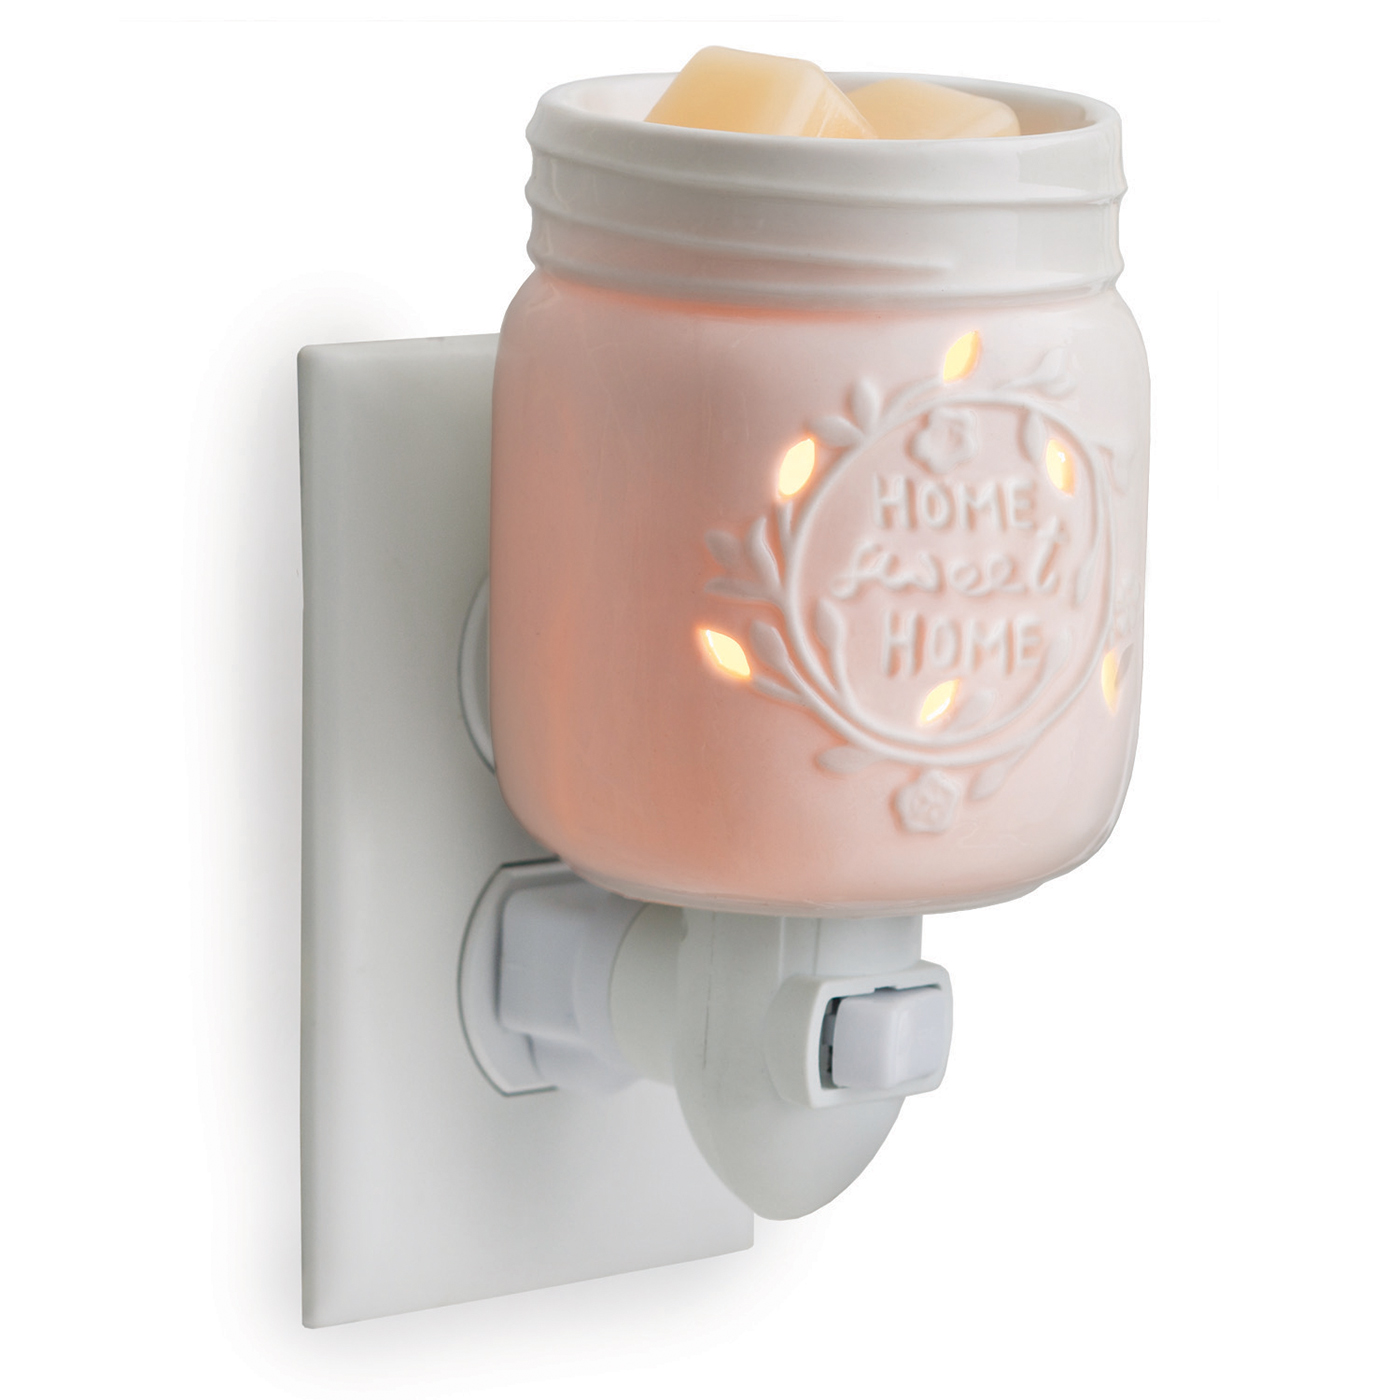 Mason Jar Porcelain Plug In Fragrance Warmer